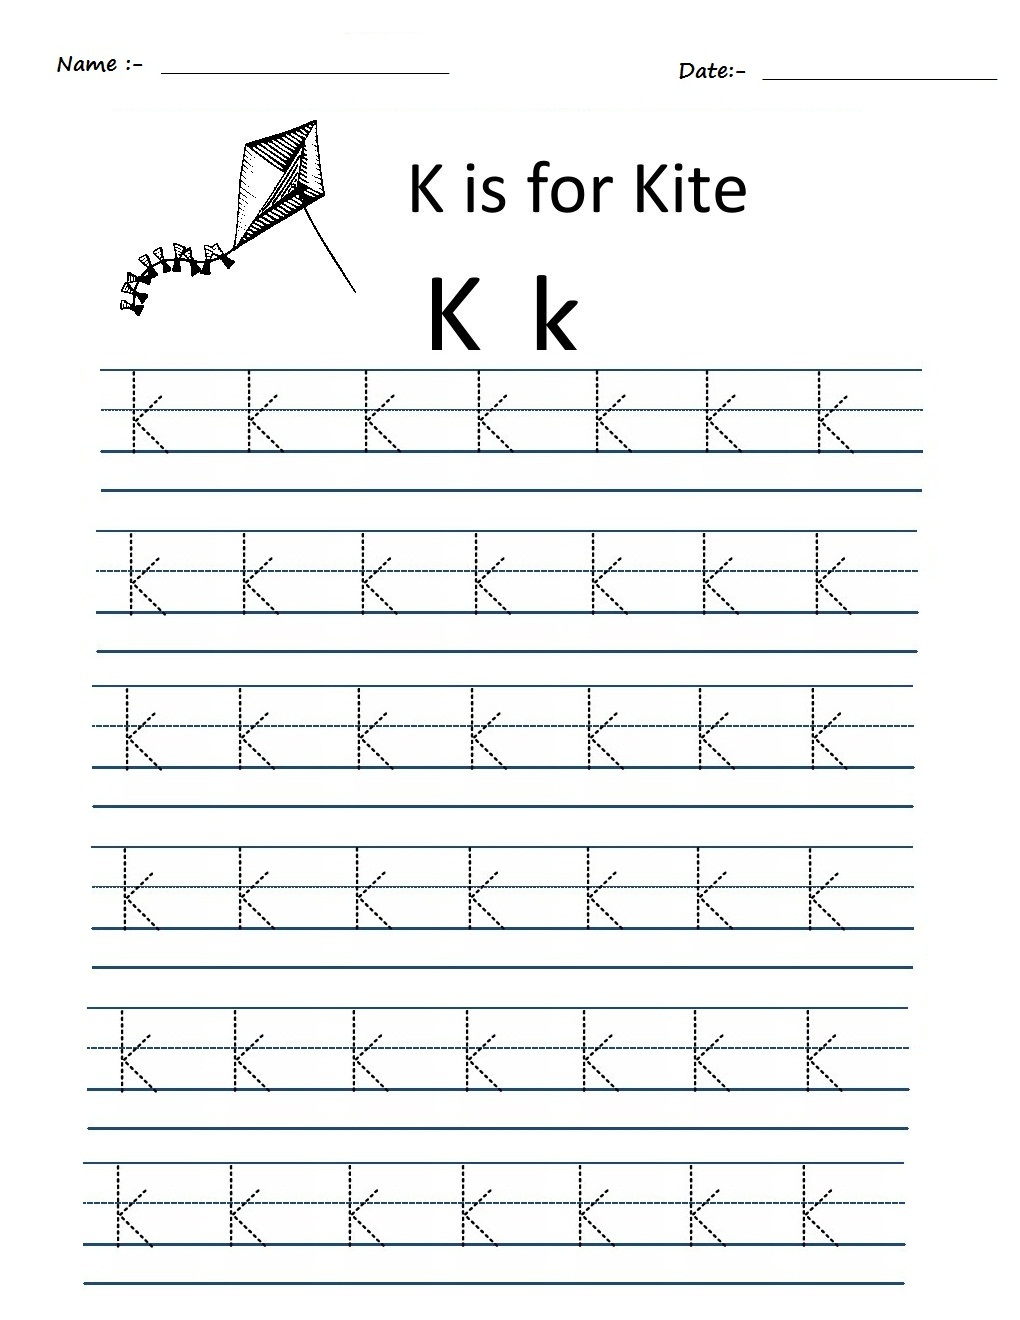 Kindergarten Worksheets: Alphabet Tracing Worksheets - K throughout K Letter Tracing